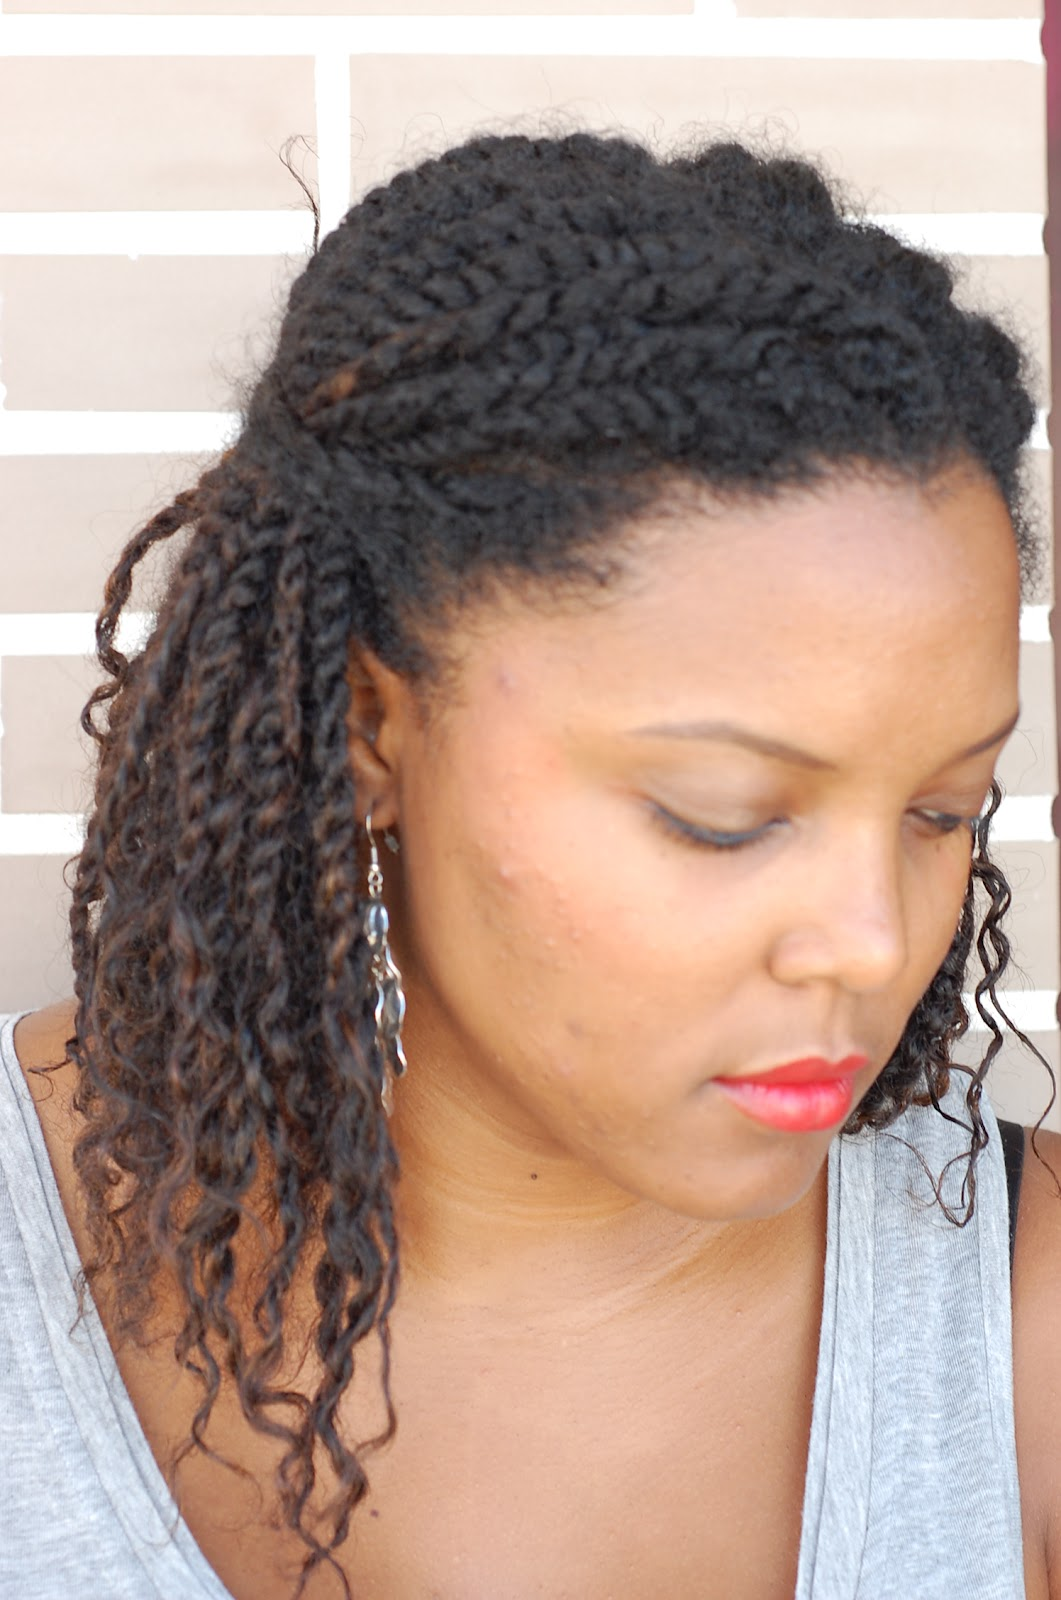 Coiffure Tresse De Cote Vanilla 39s And Chocolate 39s Dream Juillet 2012